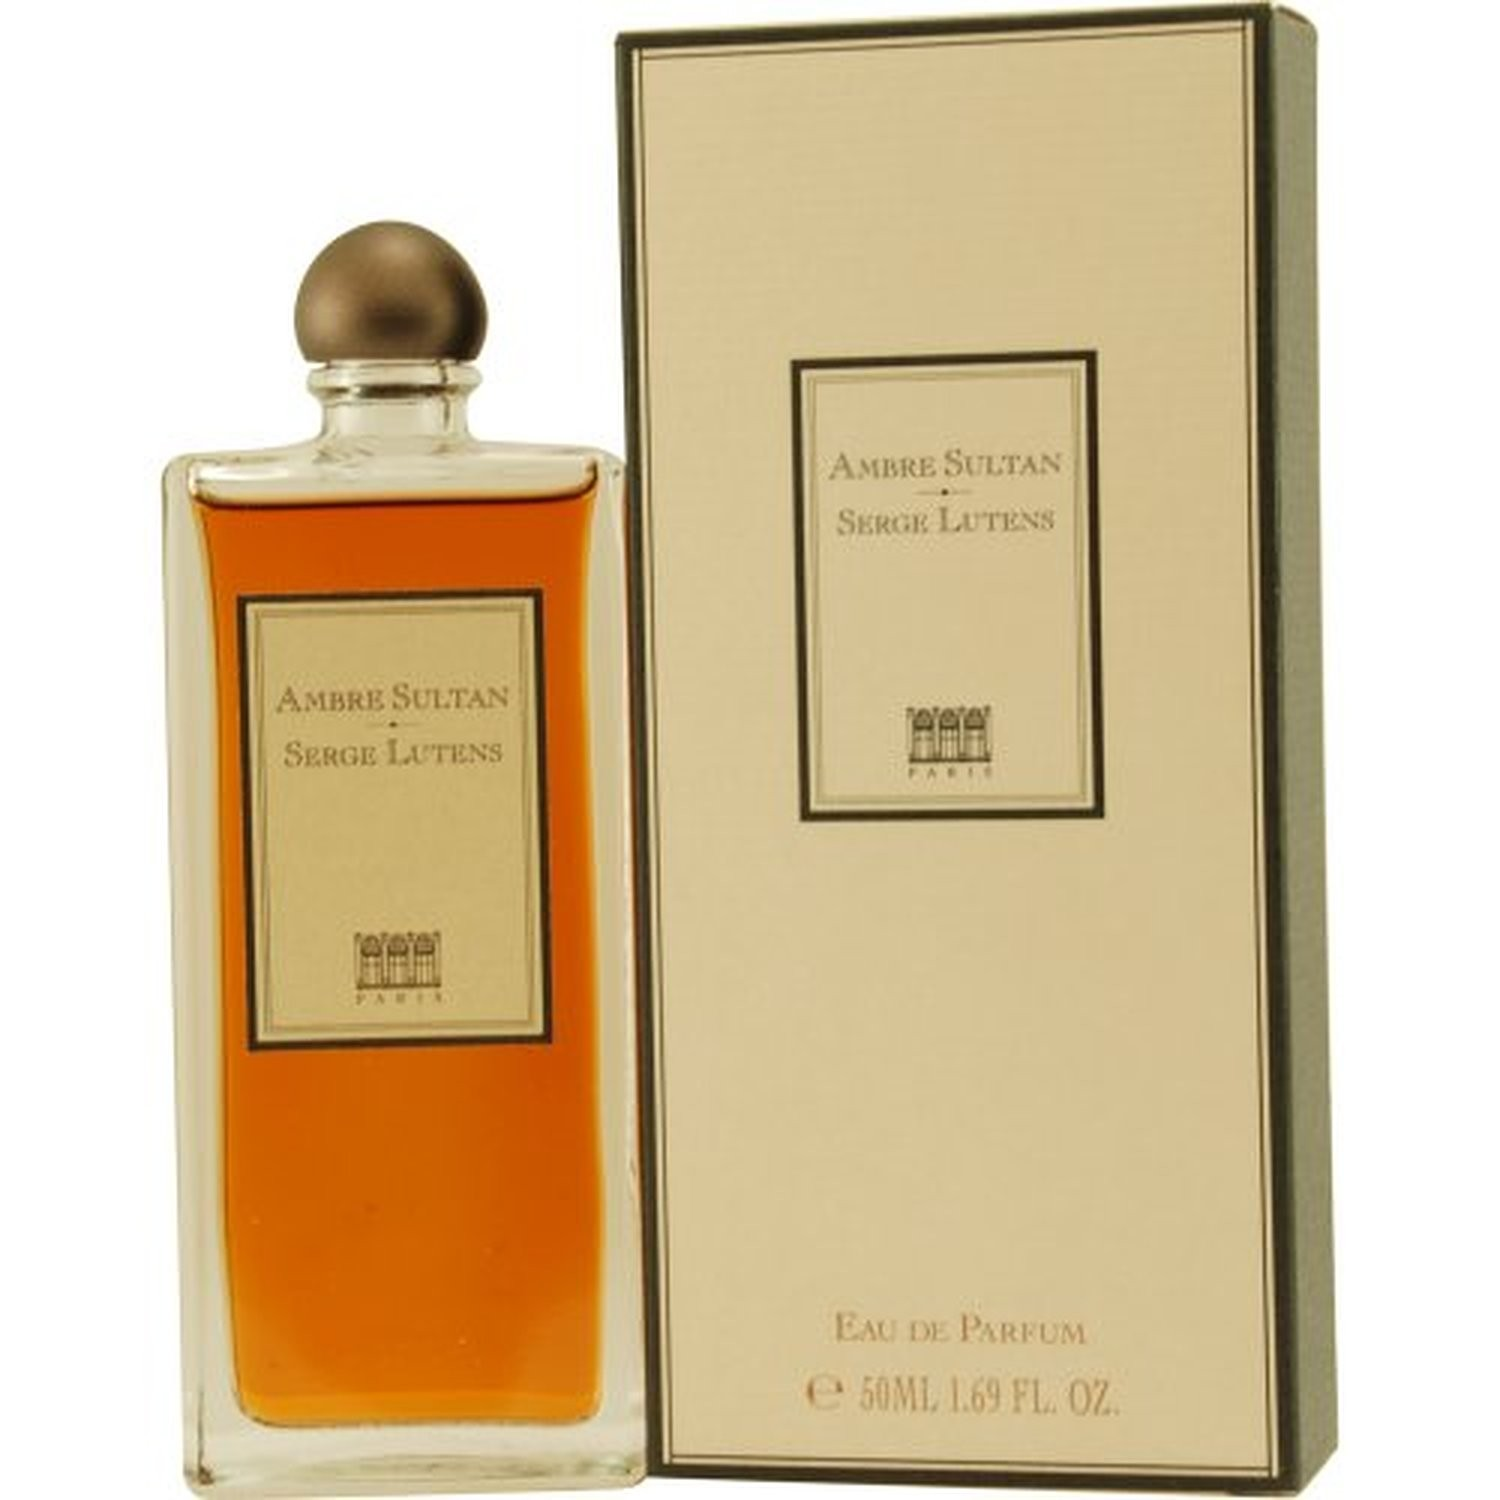 ambre sultan by serge lutens for him and her eau de parfum luxury perfum 7store. Black Bedroom Furniture Sets. Home Design Ideas